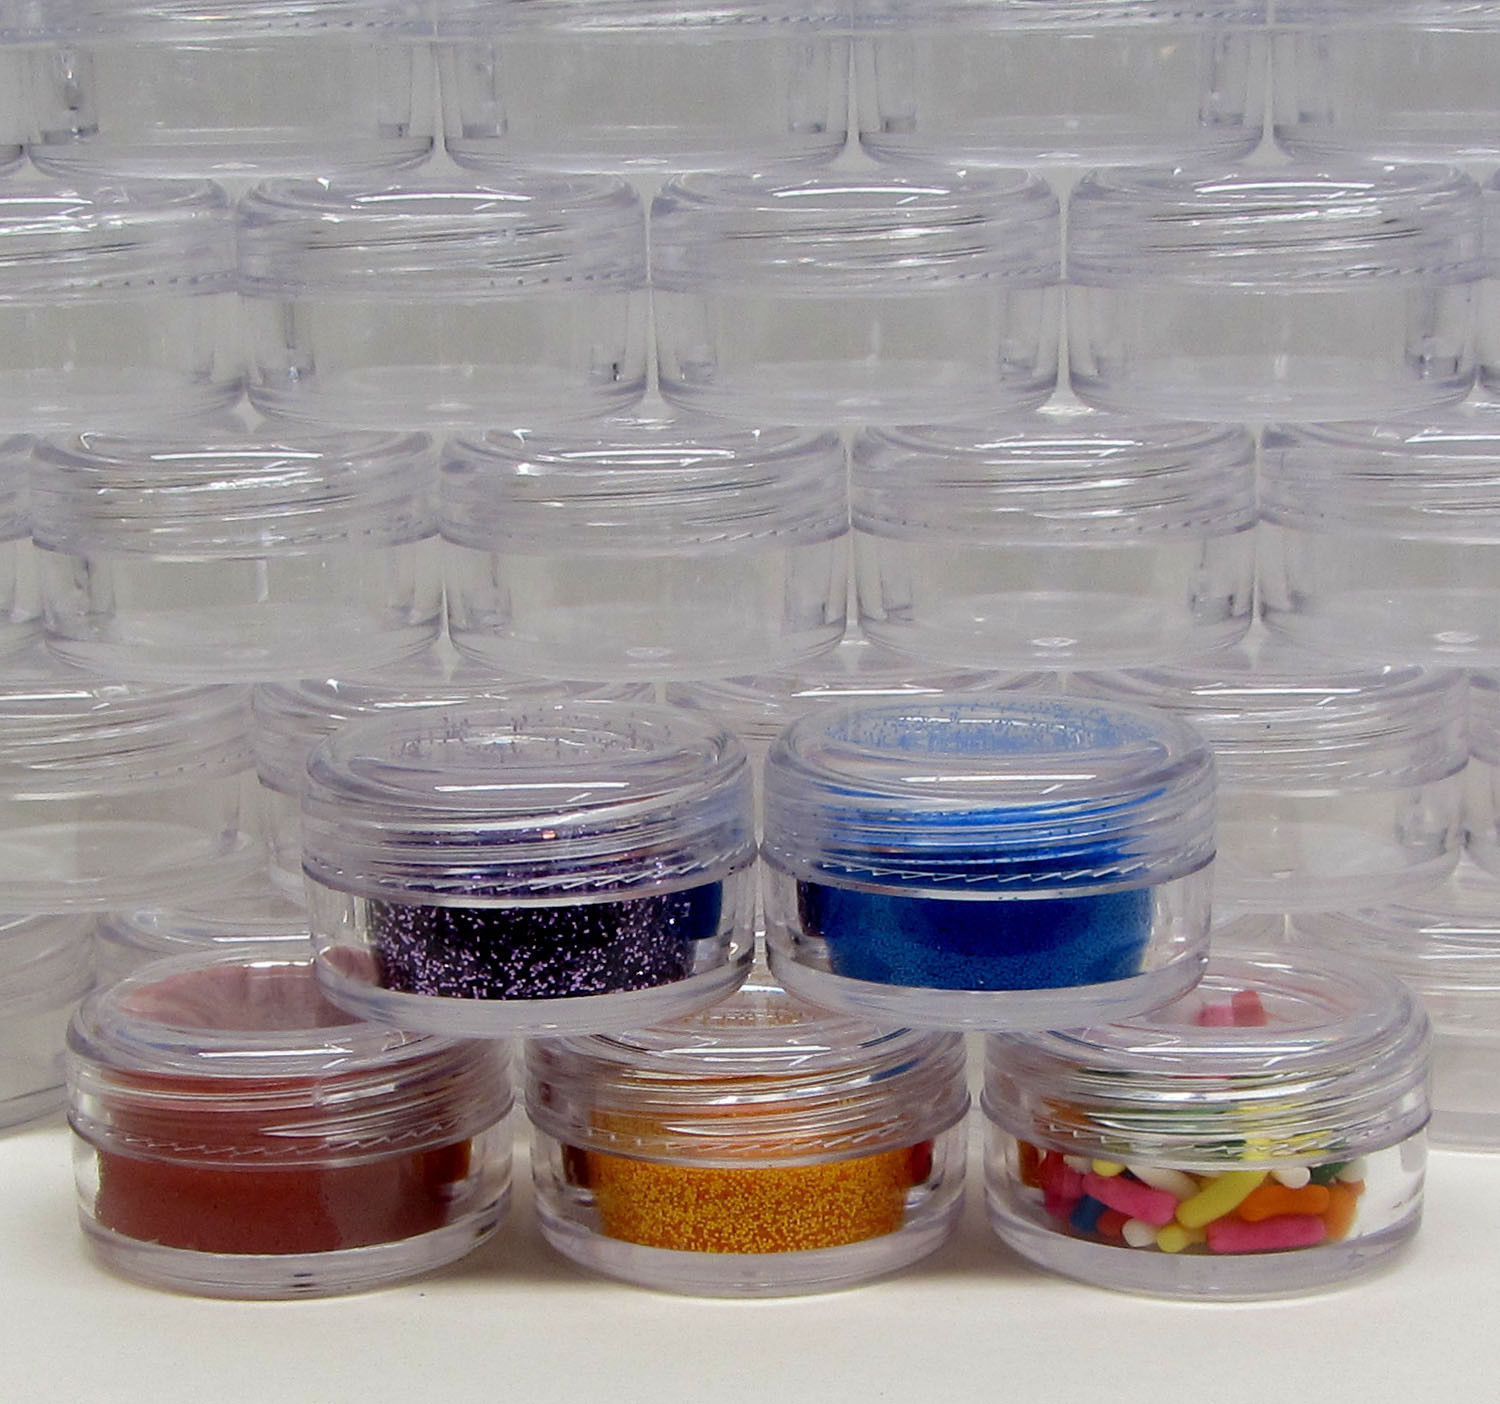 45ea785c9419 500 Small Empty Makeup Cosmetic Containers and 40 similar items